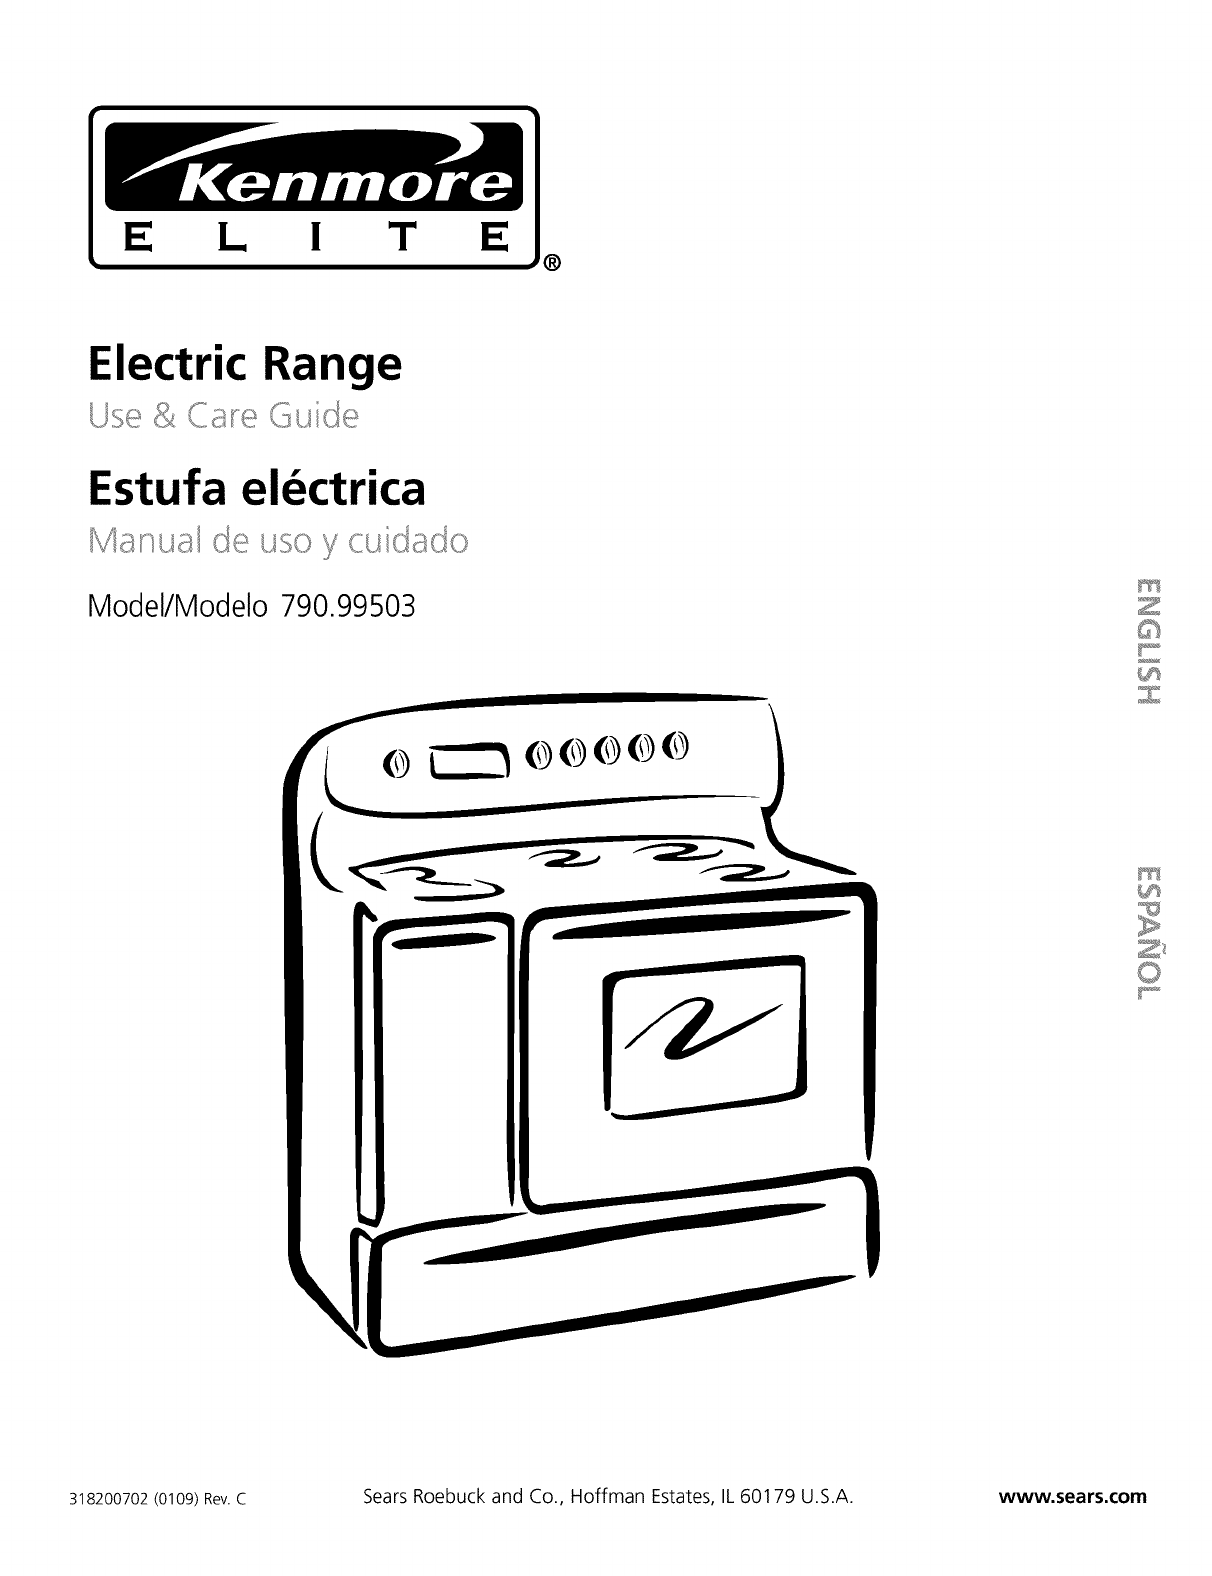 Kenmore Elite 79099503991 User Manual ELECTRIC RANGE